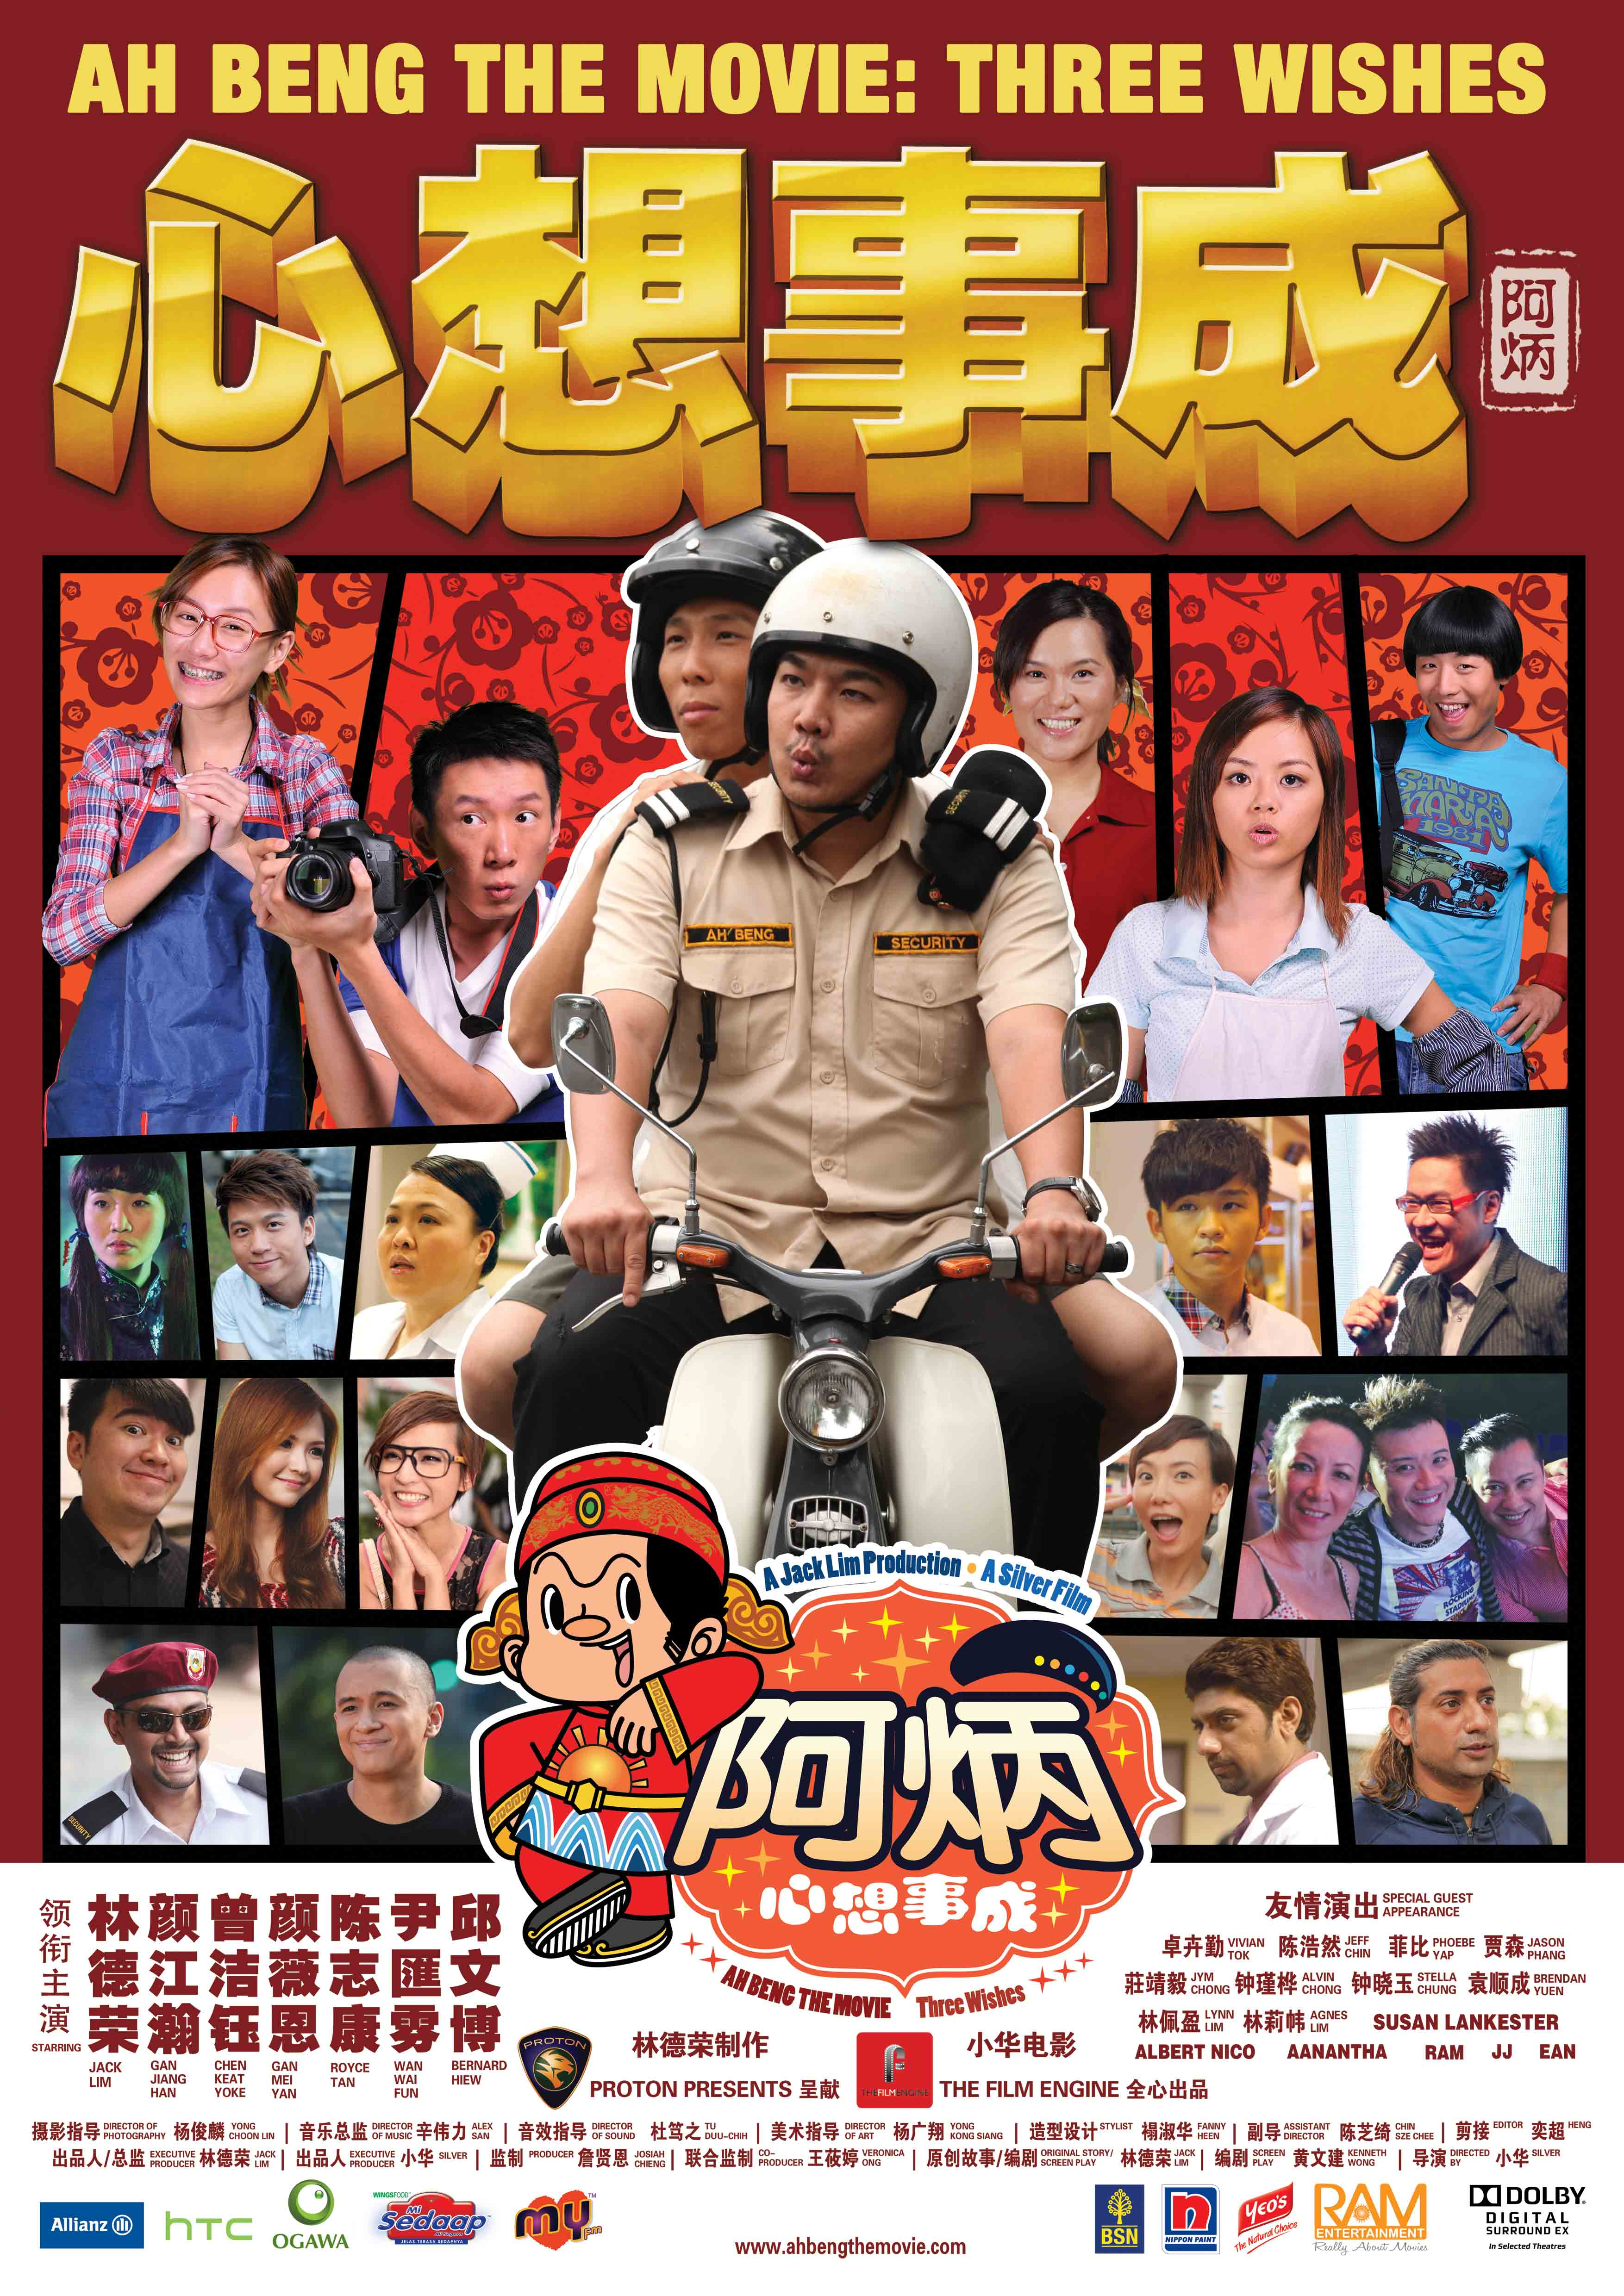 Ah Beng The Movie Poster A2 BG THE 25TH FESTIVAL FILEM MALAYSIA (FFM) WINNERS